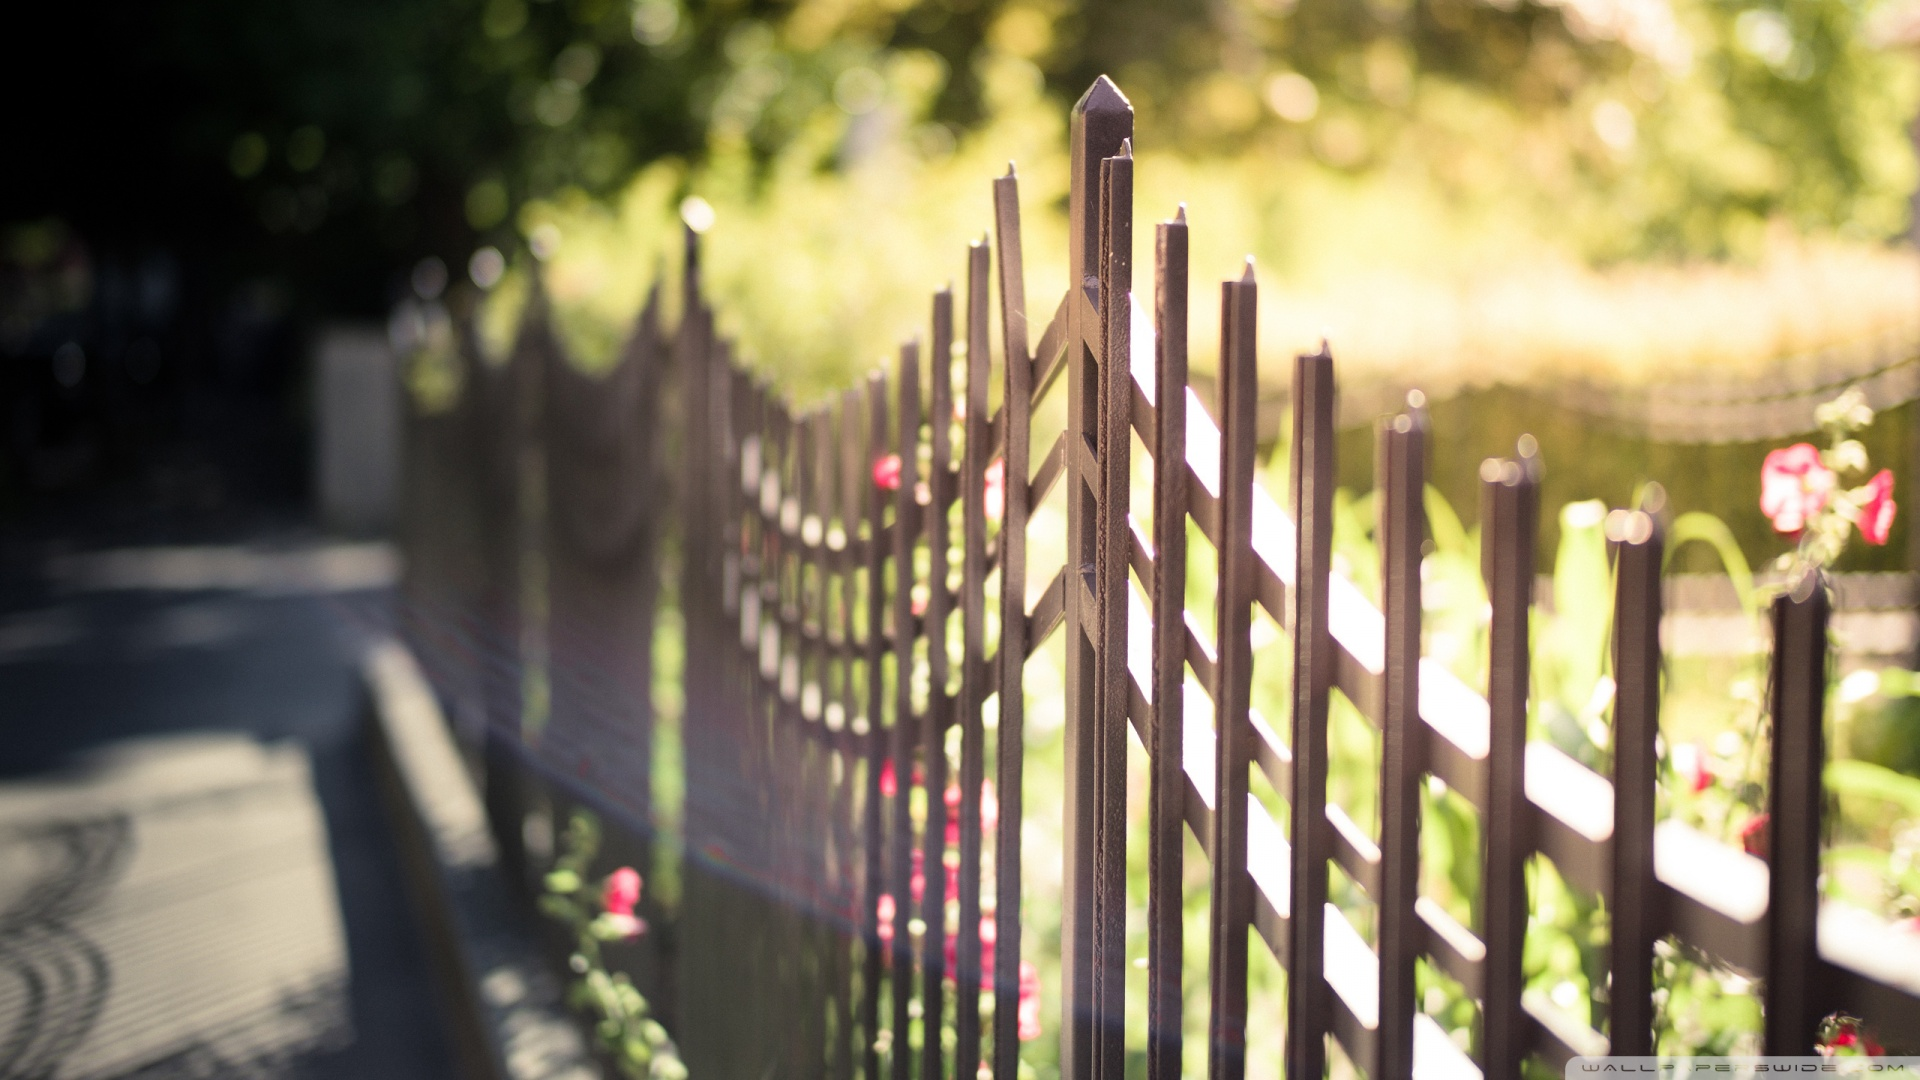 Metal Fence Wallpaper HD